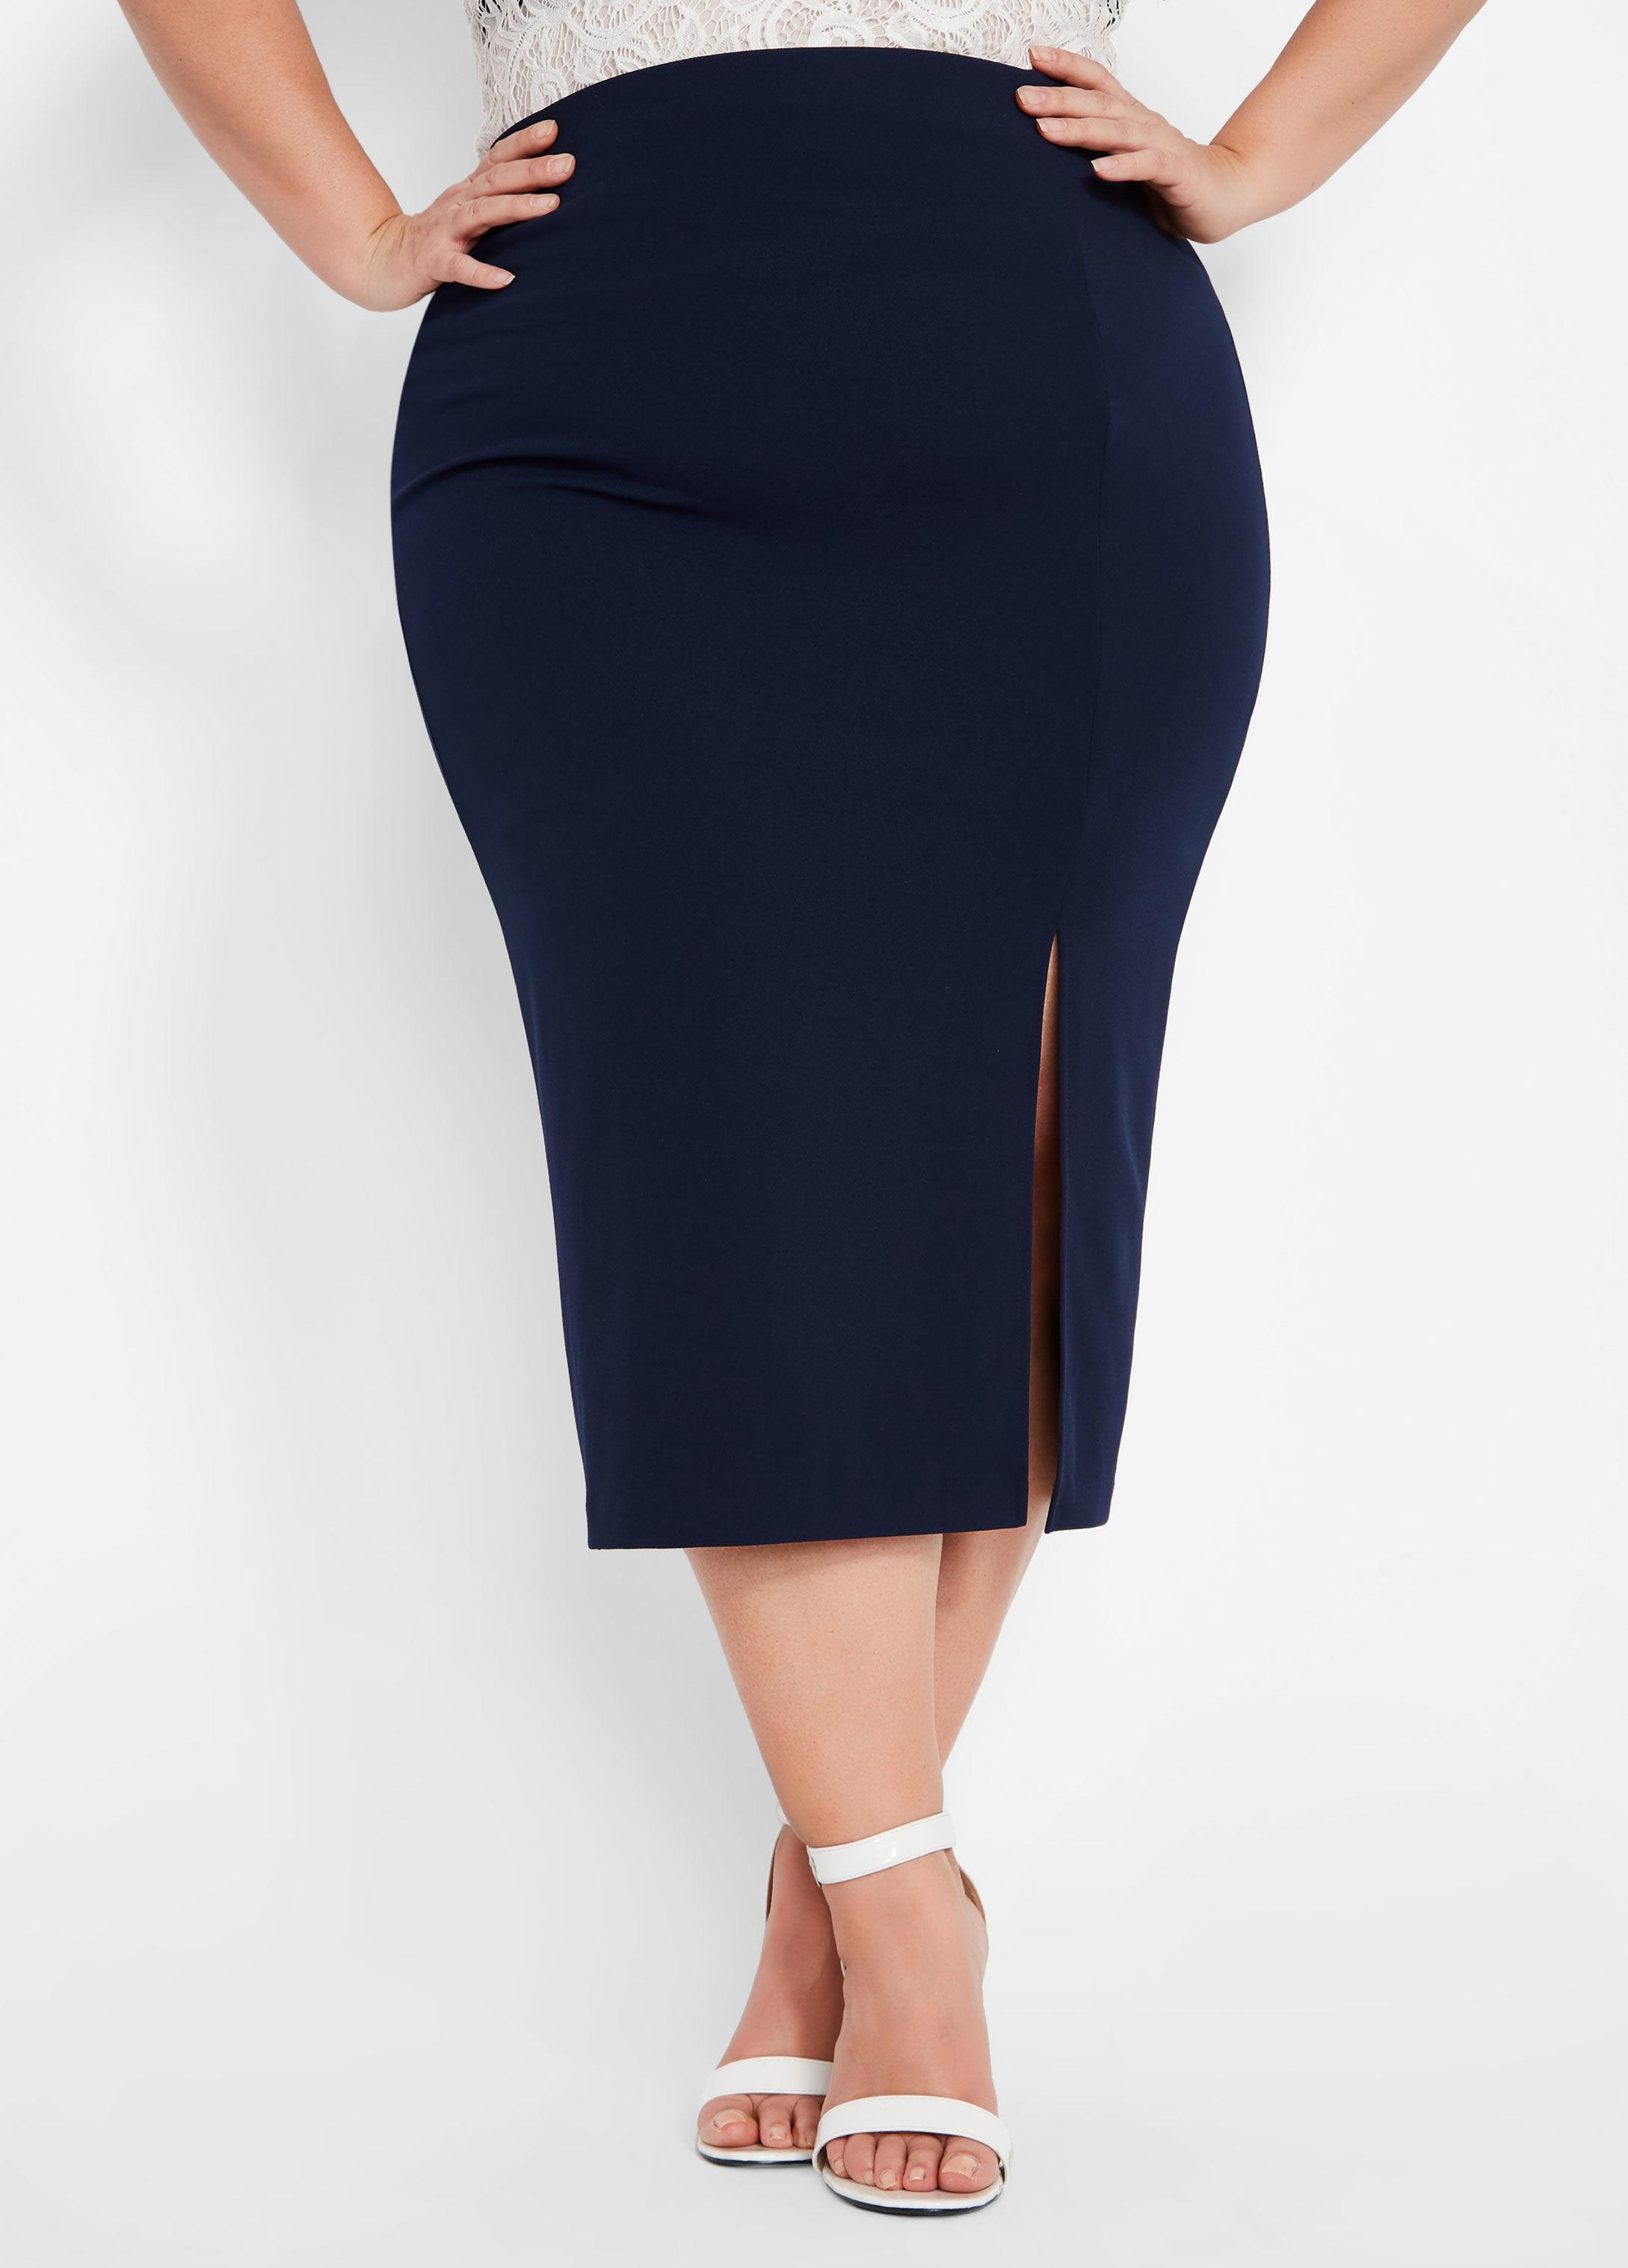 56ab79d2c5 Lyst - Ashley Stewart Plus Size Crepe Pencil Skirt in Blue